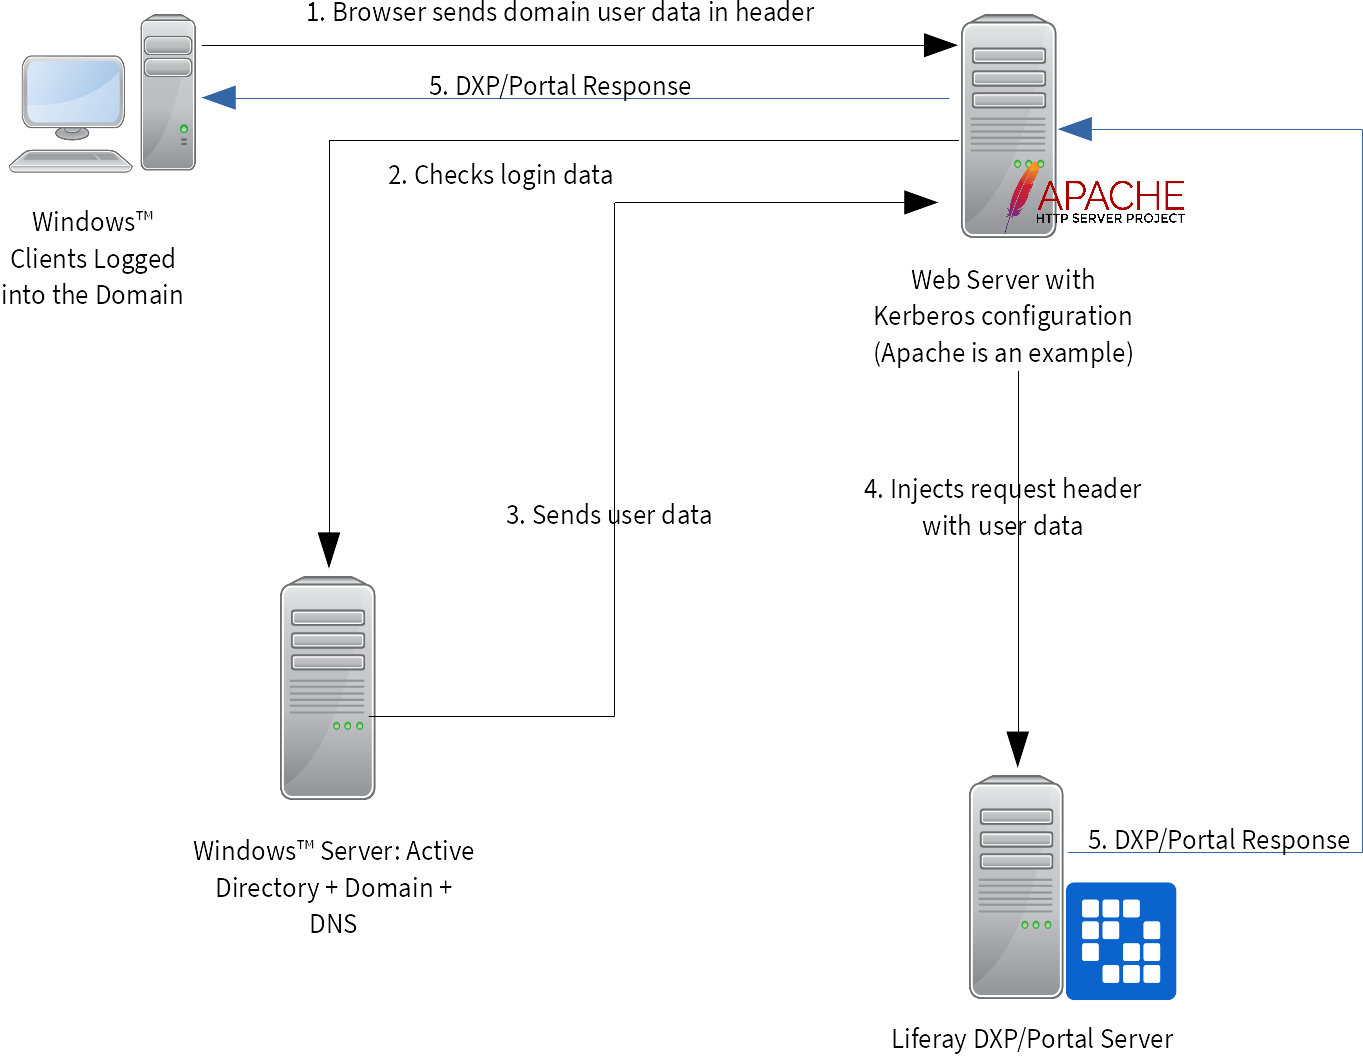 Figure 1: Kerberos authentication requires a web server in front of your Liferay DXP server.